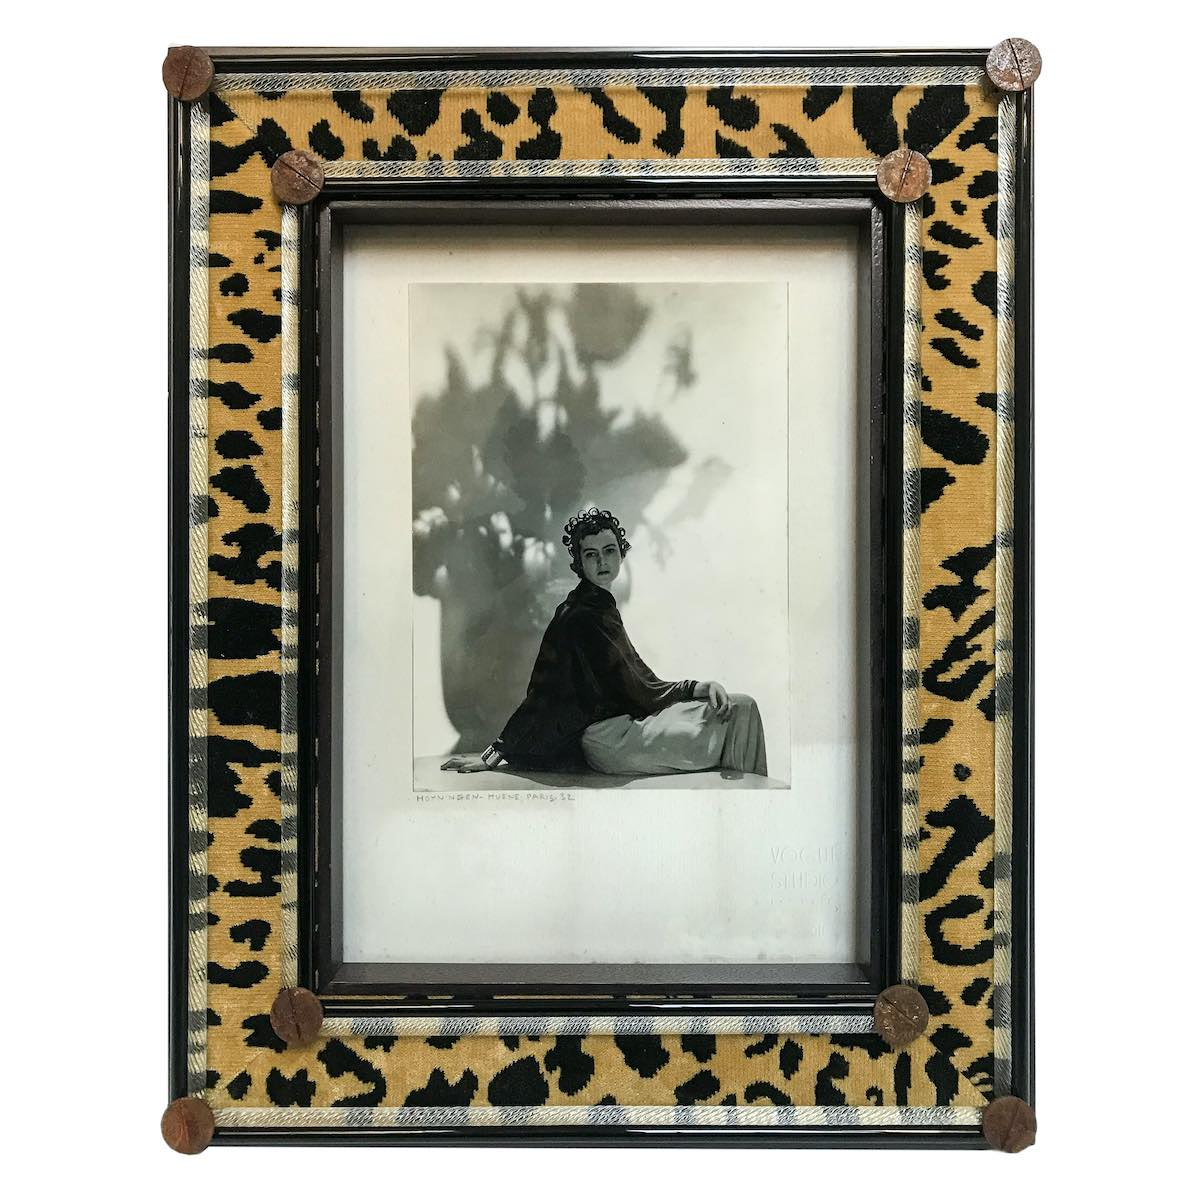 madda-frame-leopard-picture-luxury-handmade-italian